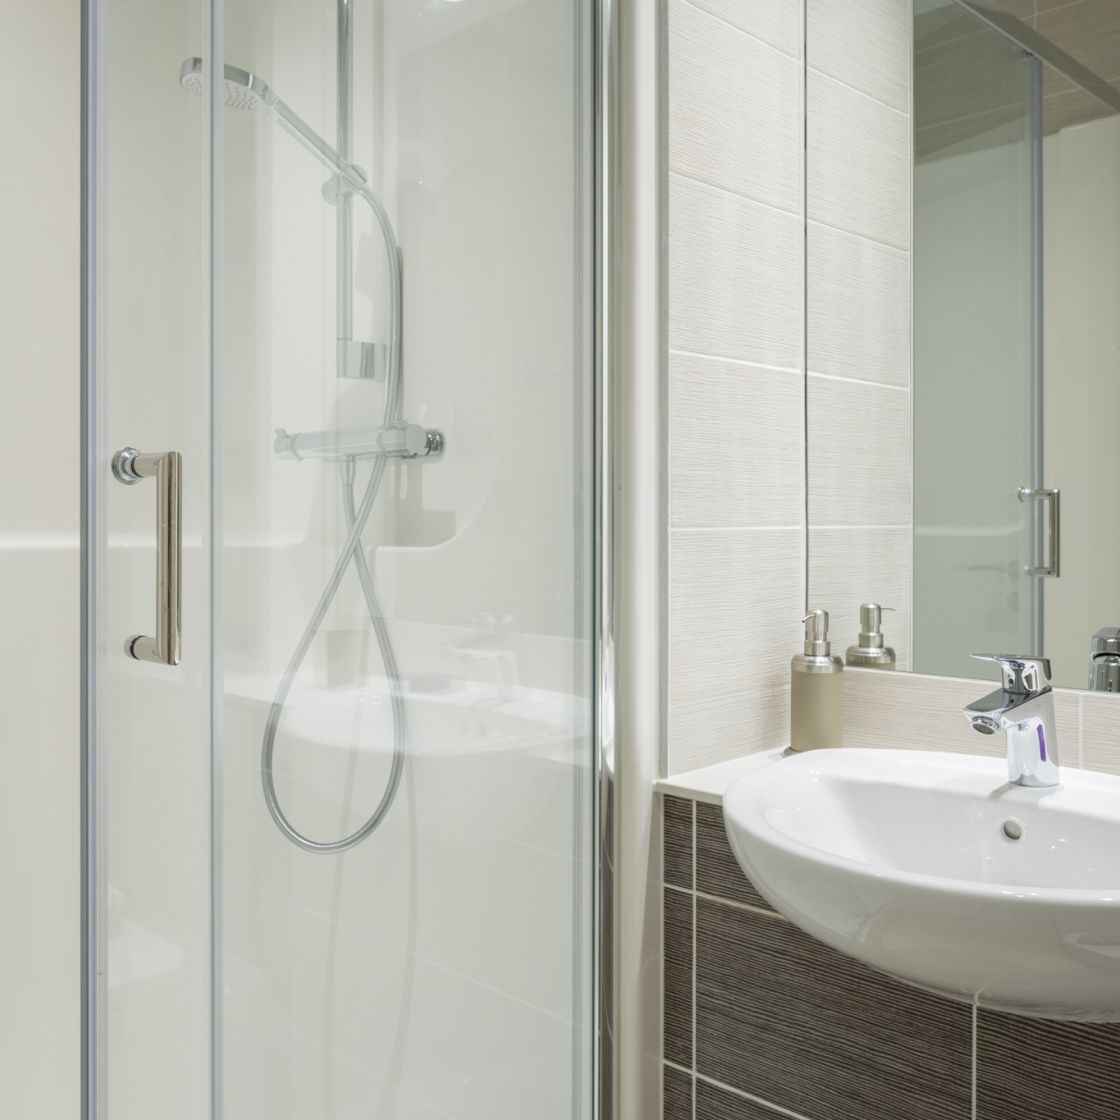 Smart Student Apartment in Liverpool. En-suite bathroom with shower. IconInc, The Ascent